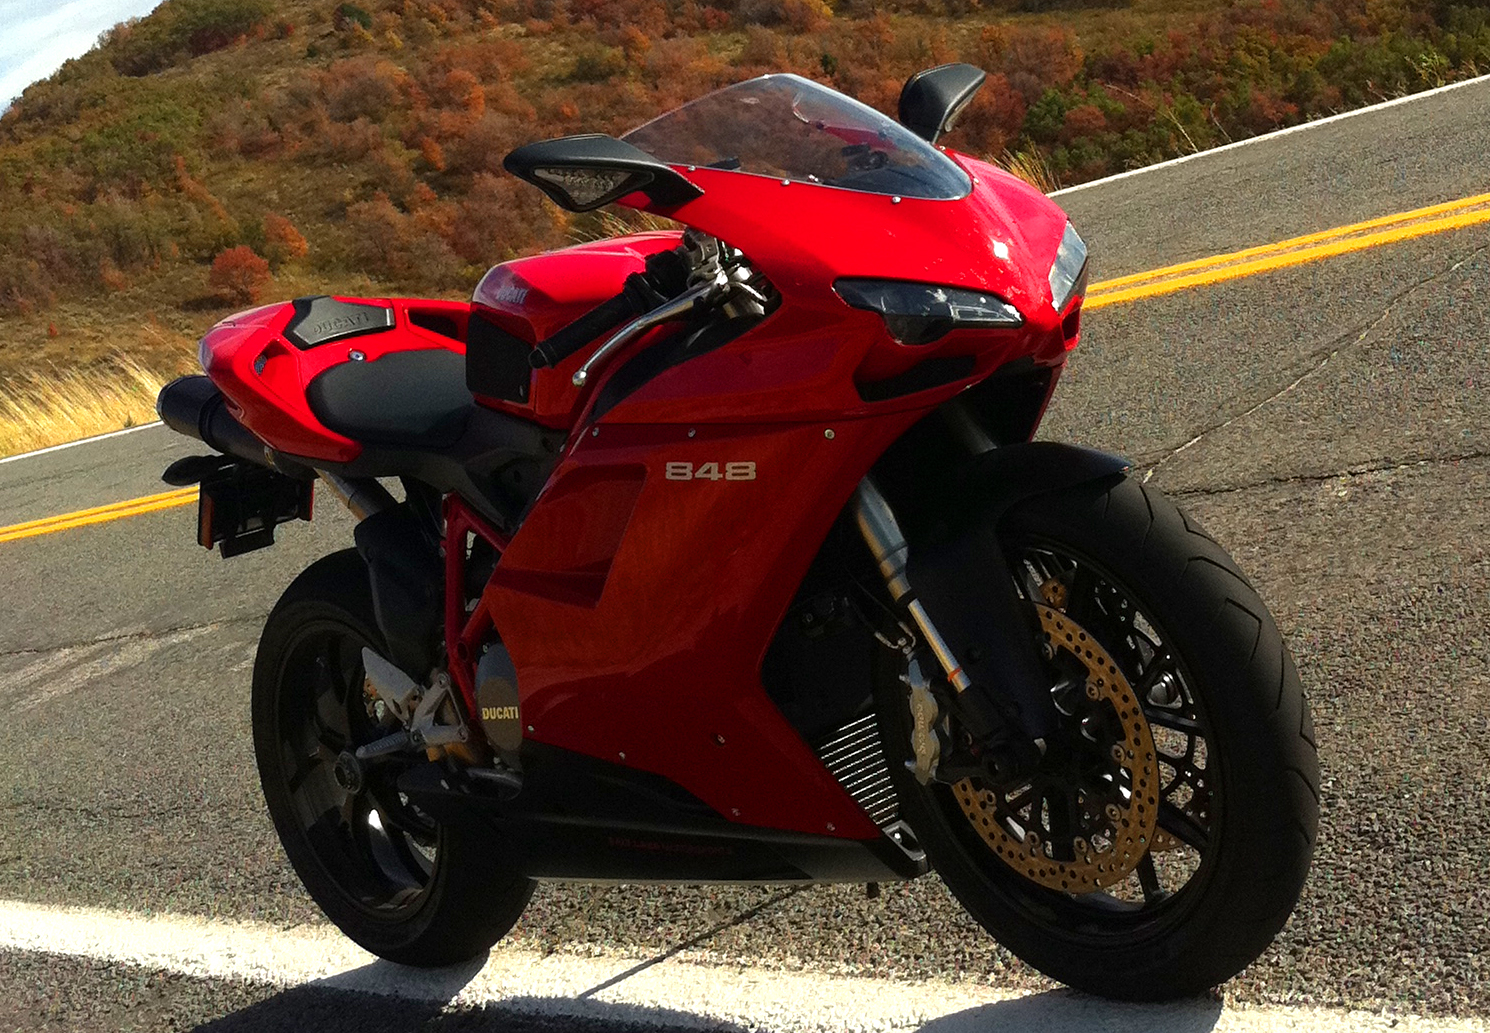 Marvelous Ducati 848 Wikipedia Pabps2019 Chair Design Images Pabps2019Com